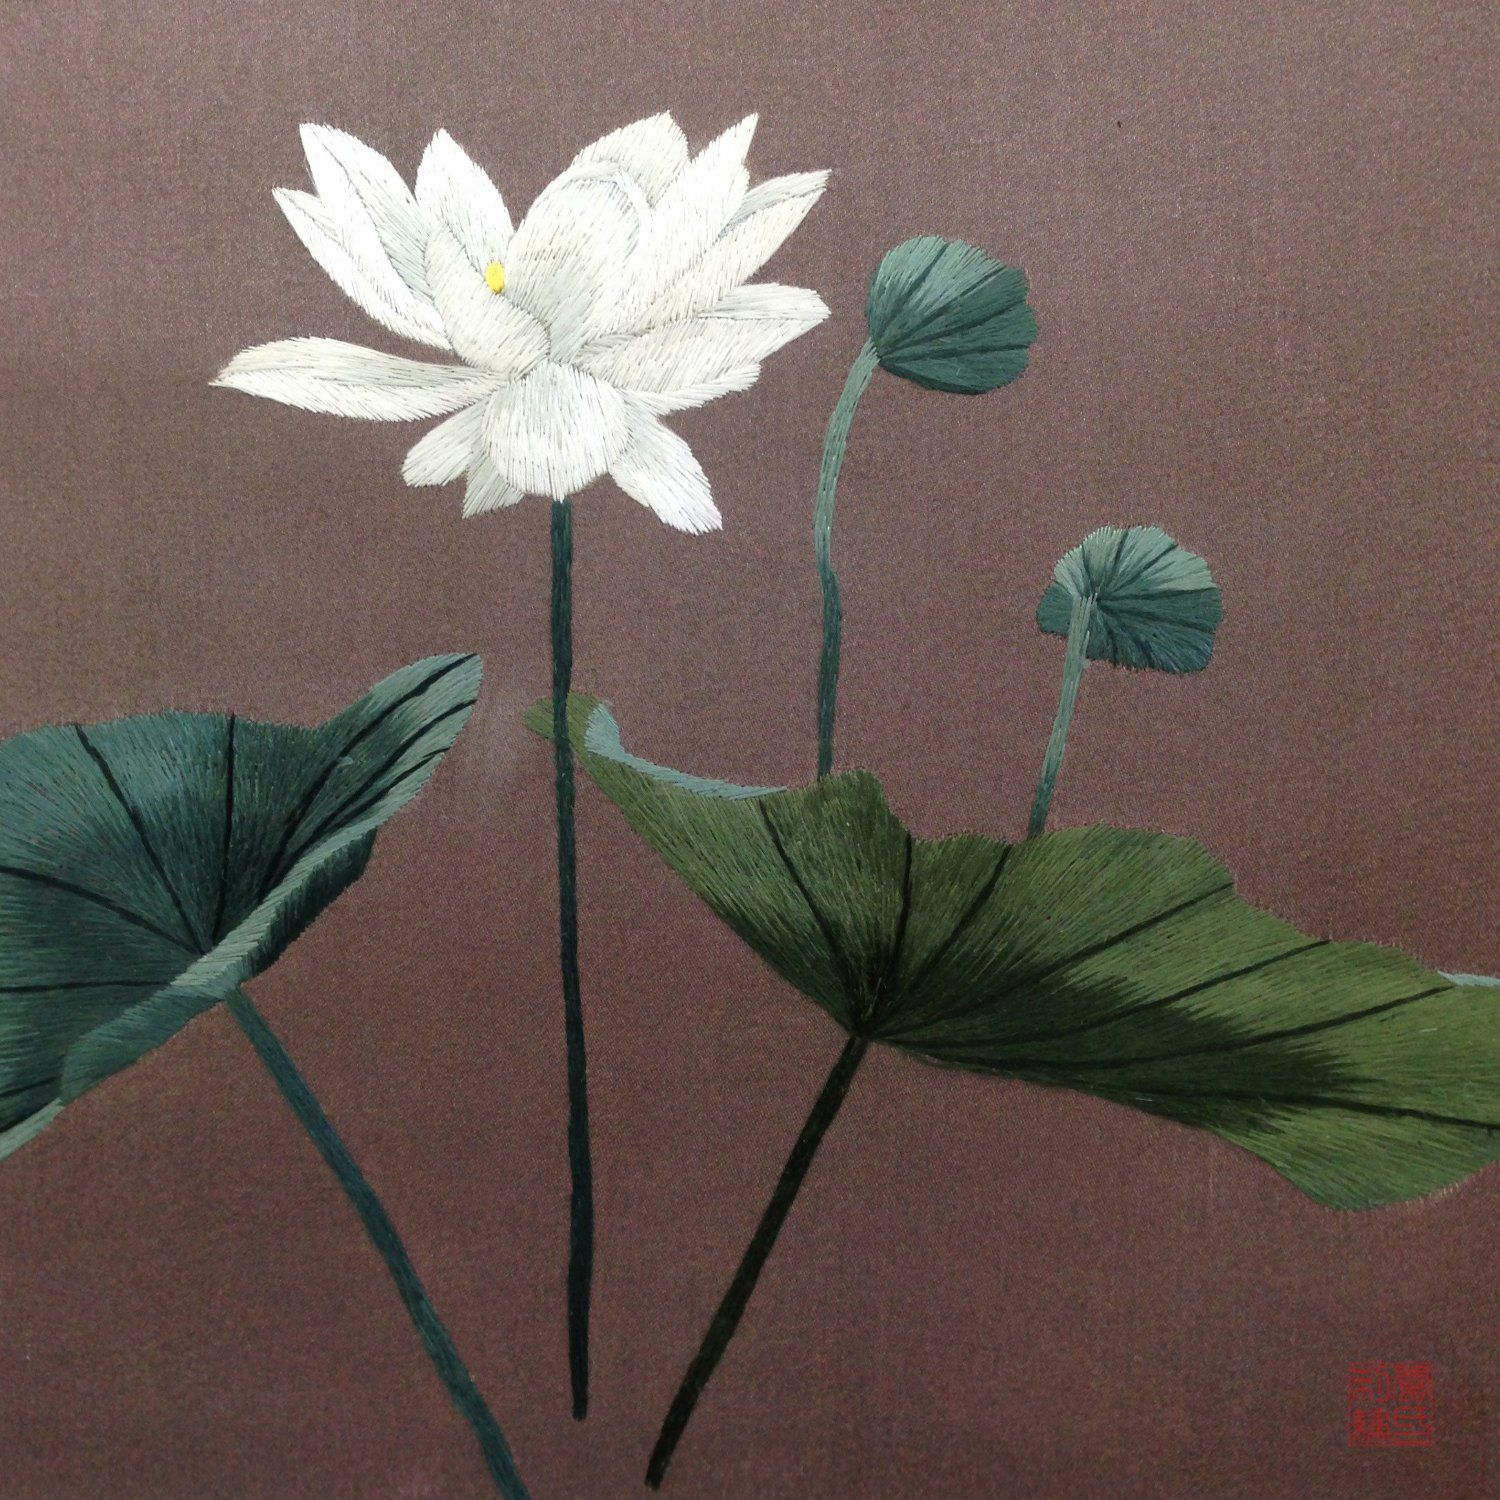 White lotus with buds beautiful handmade silk embroidery art white lotus with buds beautiful handmade silk embroidery art 36152 http izmirmasajfo